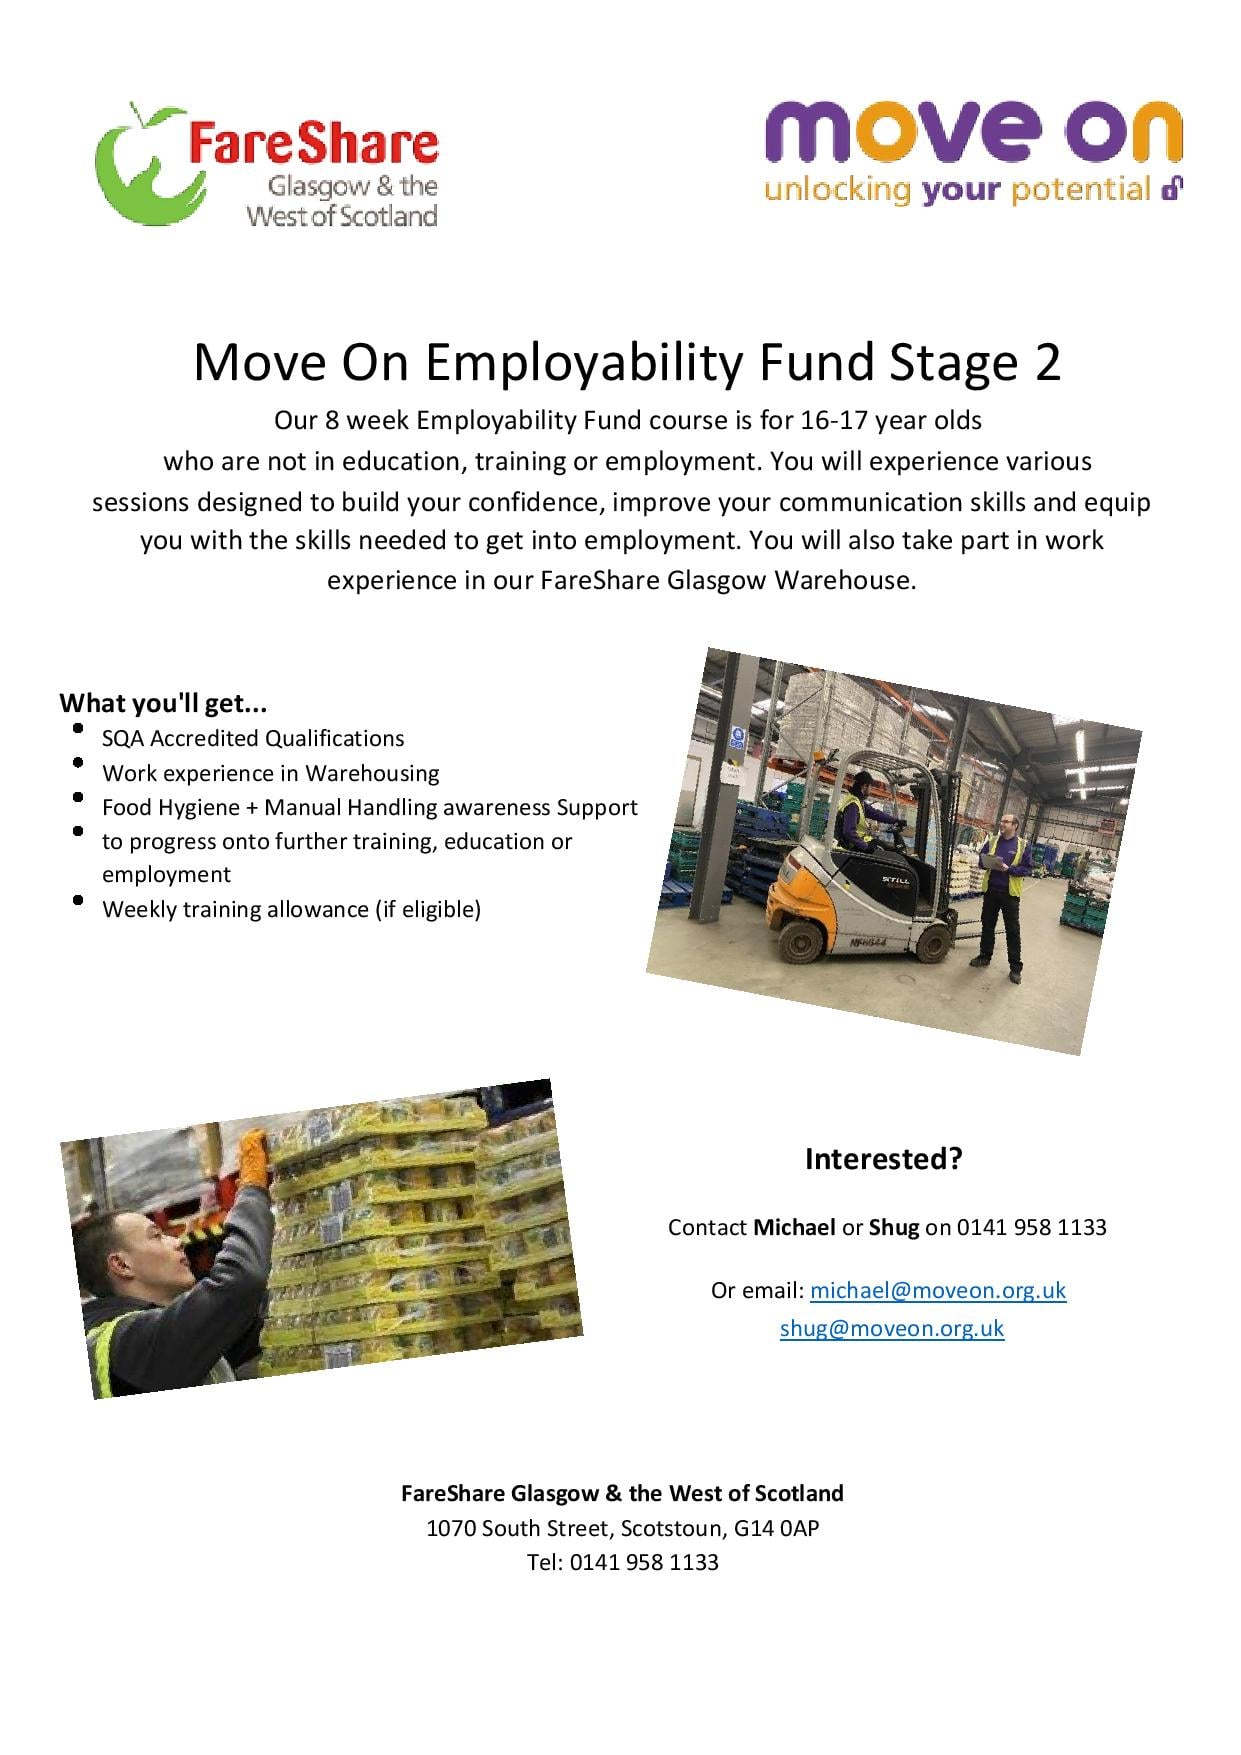 Information about employability training for young people in Glasgow